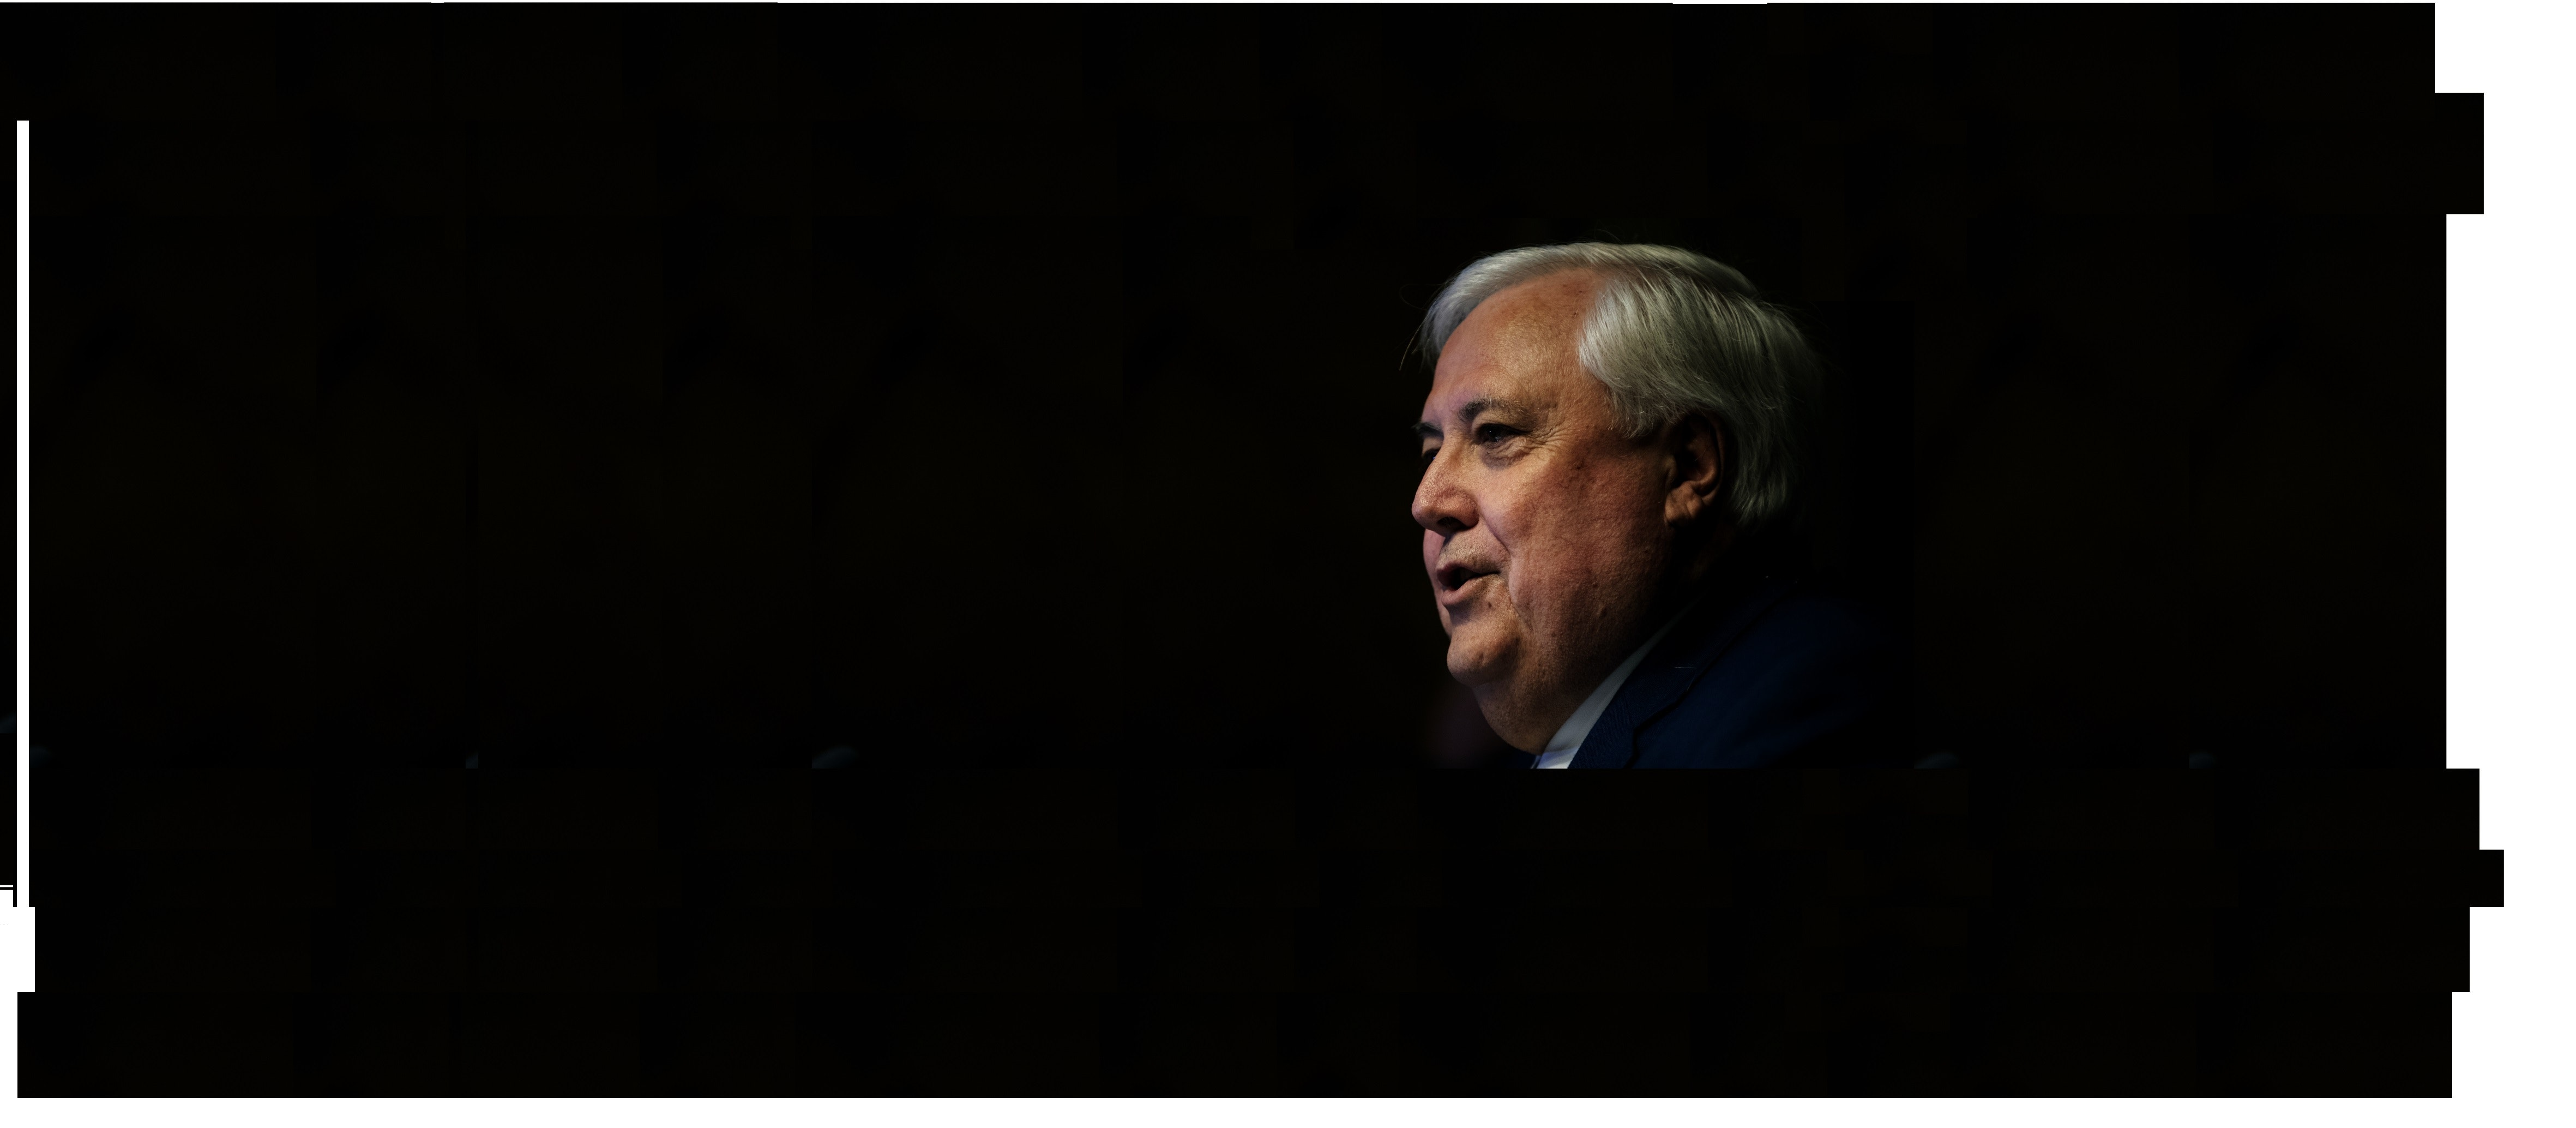 Mineral wealth, Clive Palmer, and the corruption of Australian politics